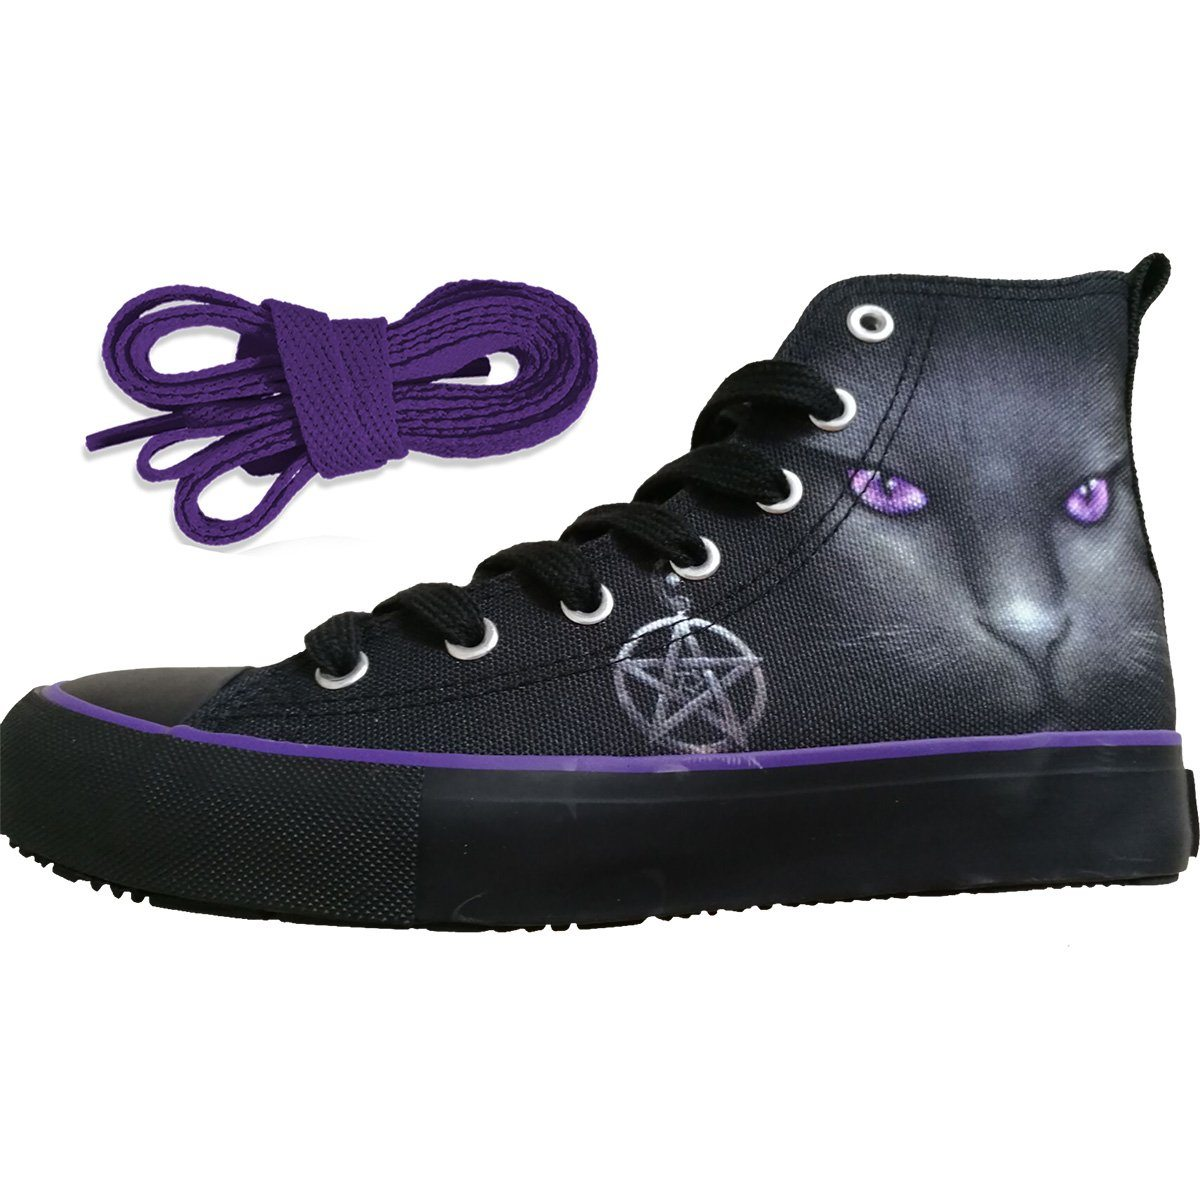 Black Cat Women's High-Top Sneakers - Rebels Depot